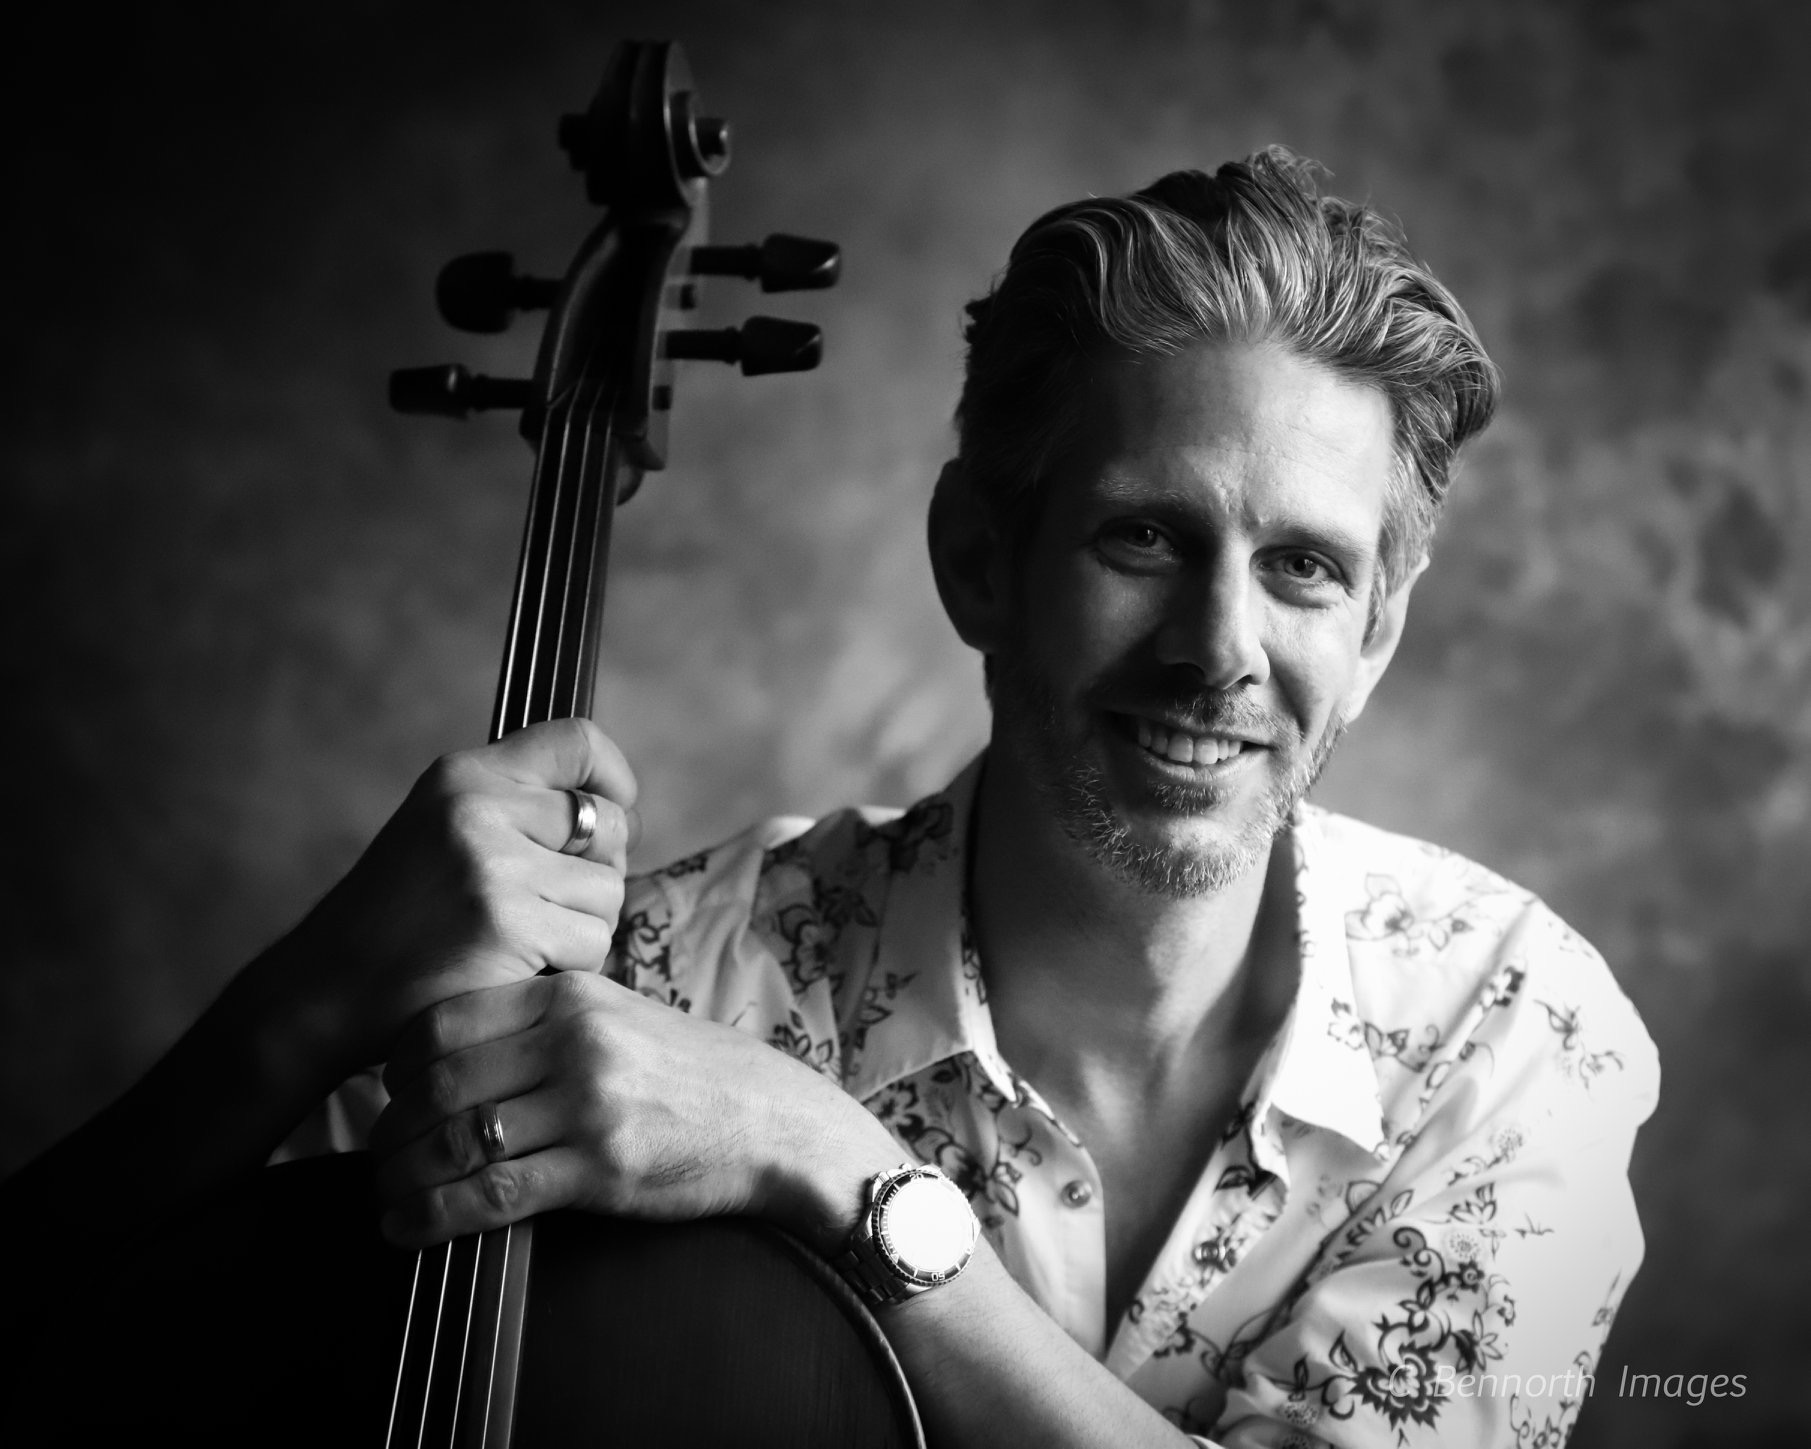 2:15 - 3:05 Ryan Carney    Ryan Carney  is a bassist, cellist and music educator with more than 30 years of experience studying and performing diverse styles of music. For the past 25 years, Ryan has enjoyed teaching and inspiring young talent and actively works privately with musicians in the Fox Valley. Carney performs throughout the Fox Valley and Chicago areas with his band,   Antony And The Tramps ,  as well as with the  Ryan Carney Cello Trio  featuring piano and cajon for private parties and special events. The trio performs everything from classical cello sonatas to famous melodies by The Beatles, Chris Cornell and a long list of others.